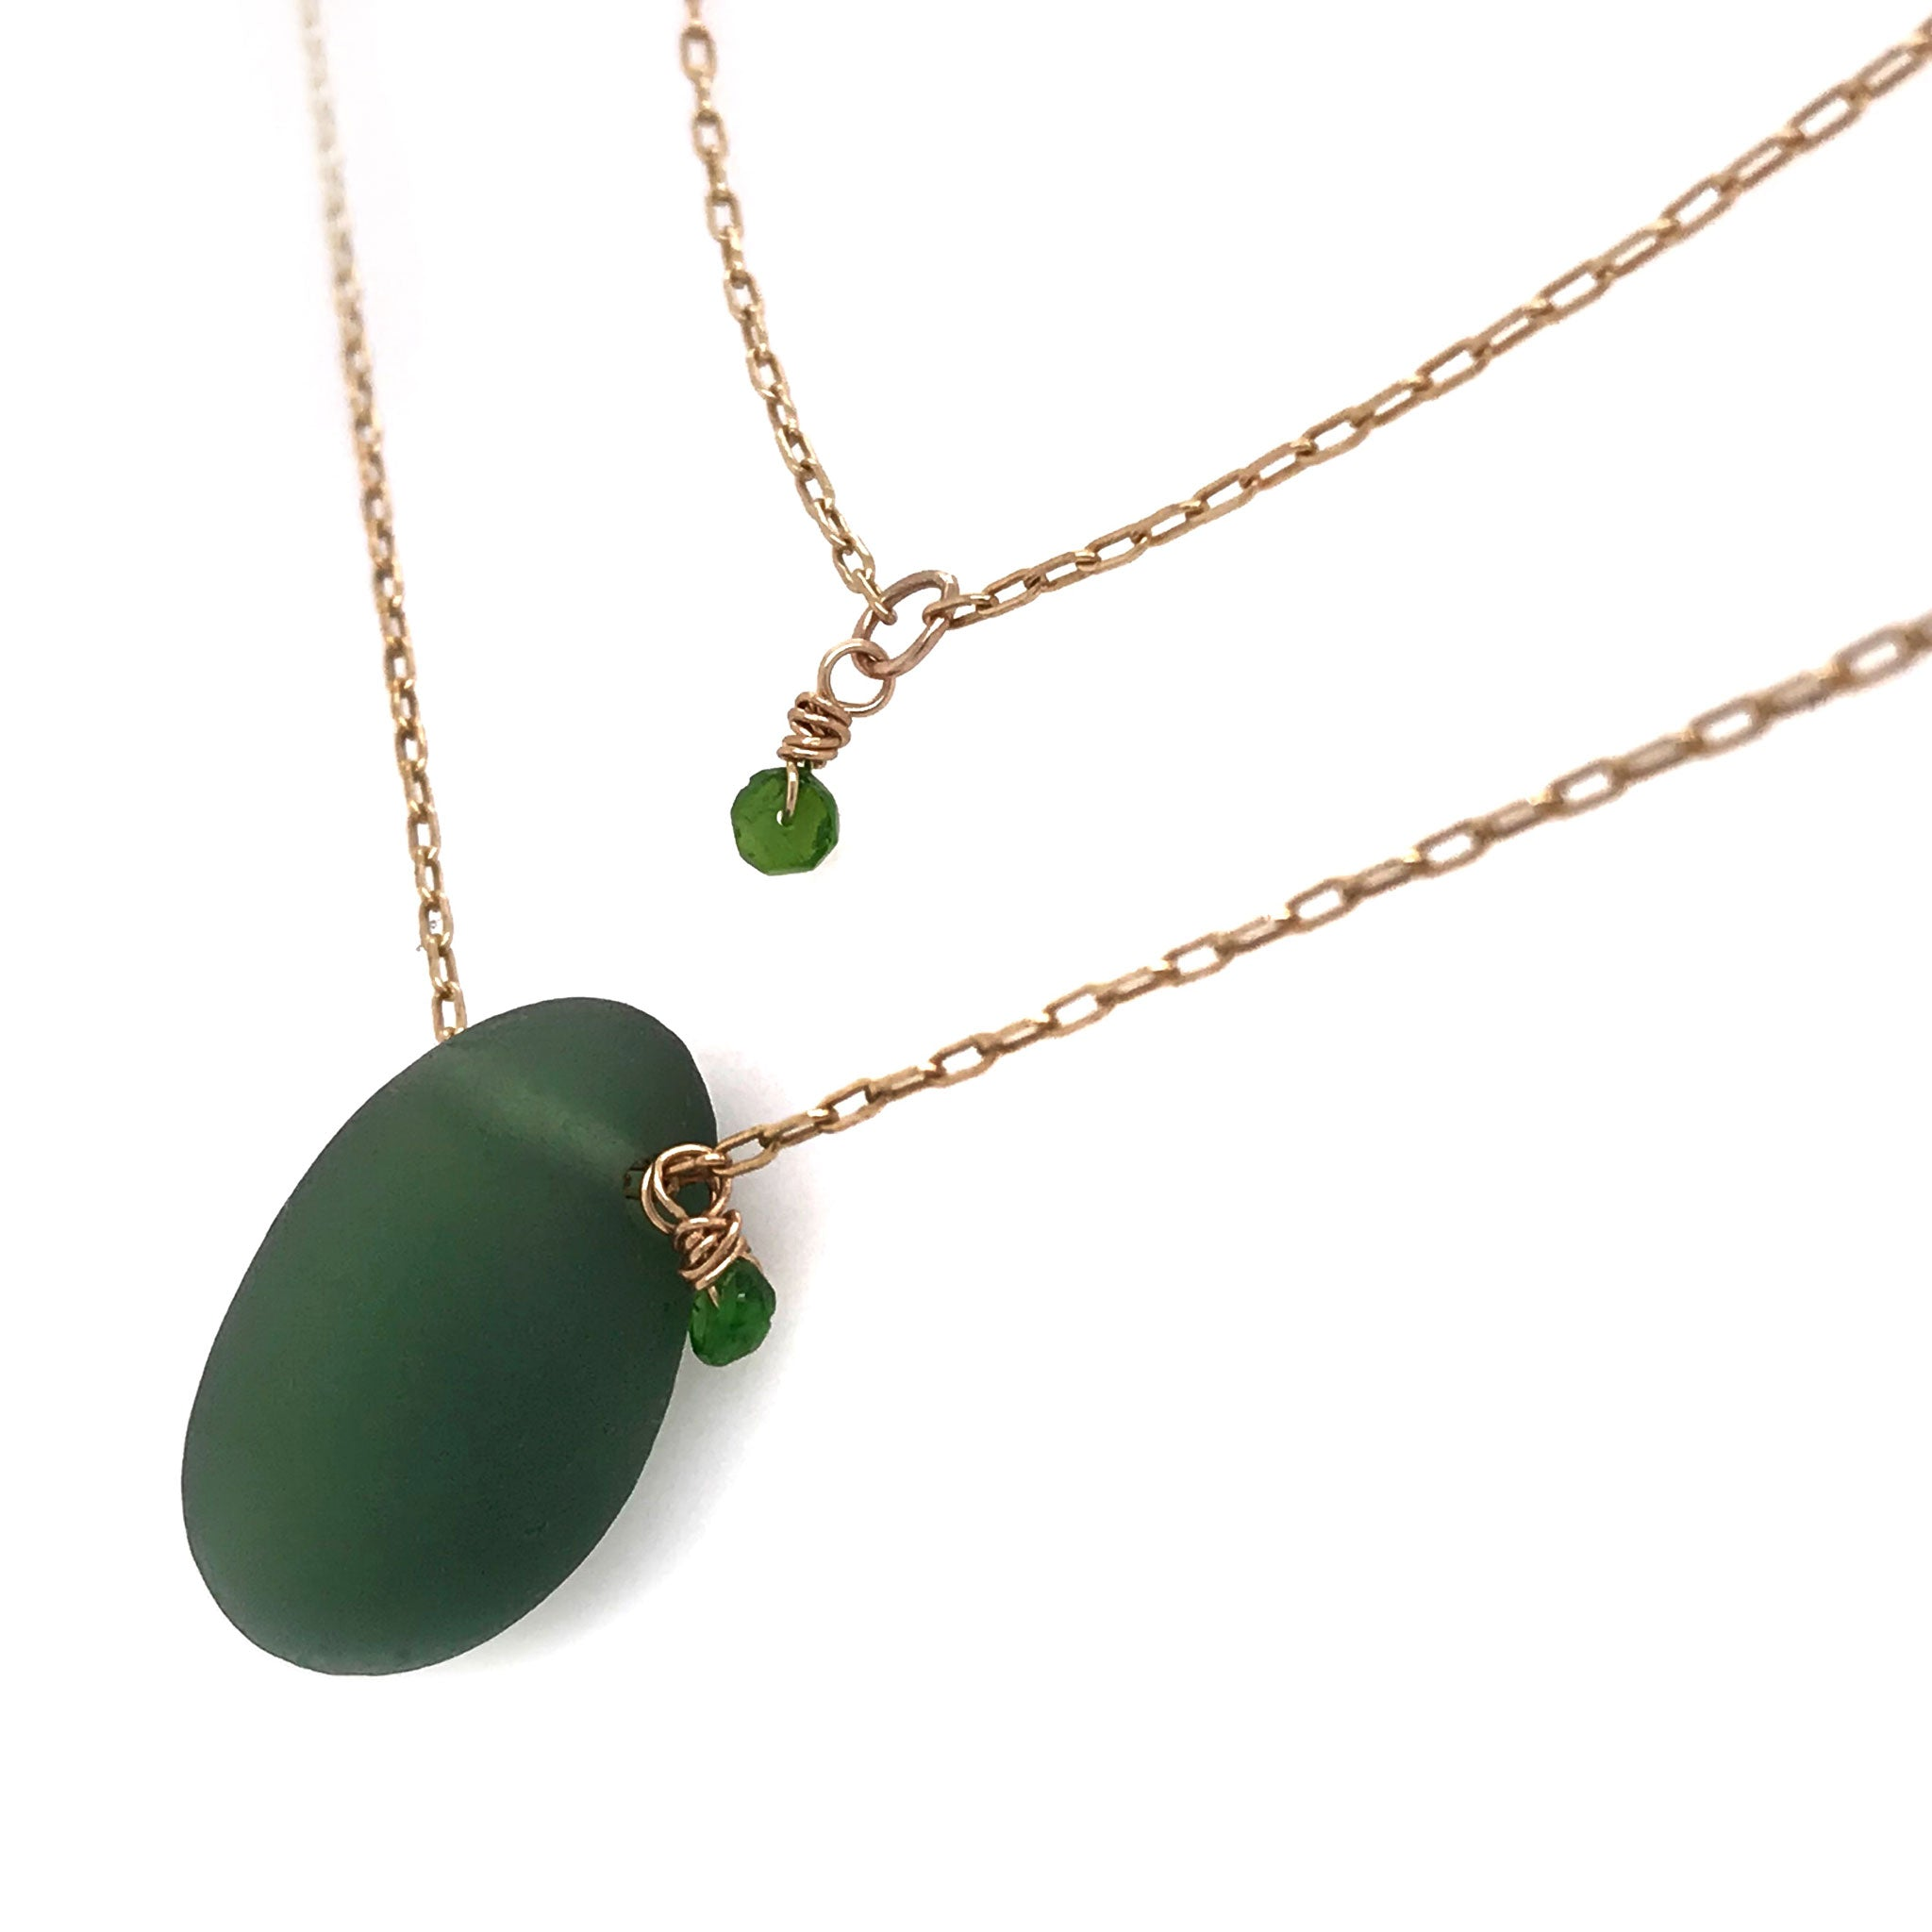 green seaglass long necklace with green stones